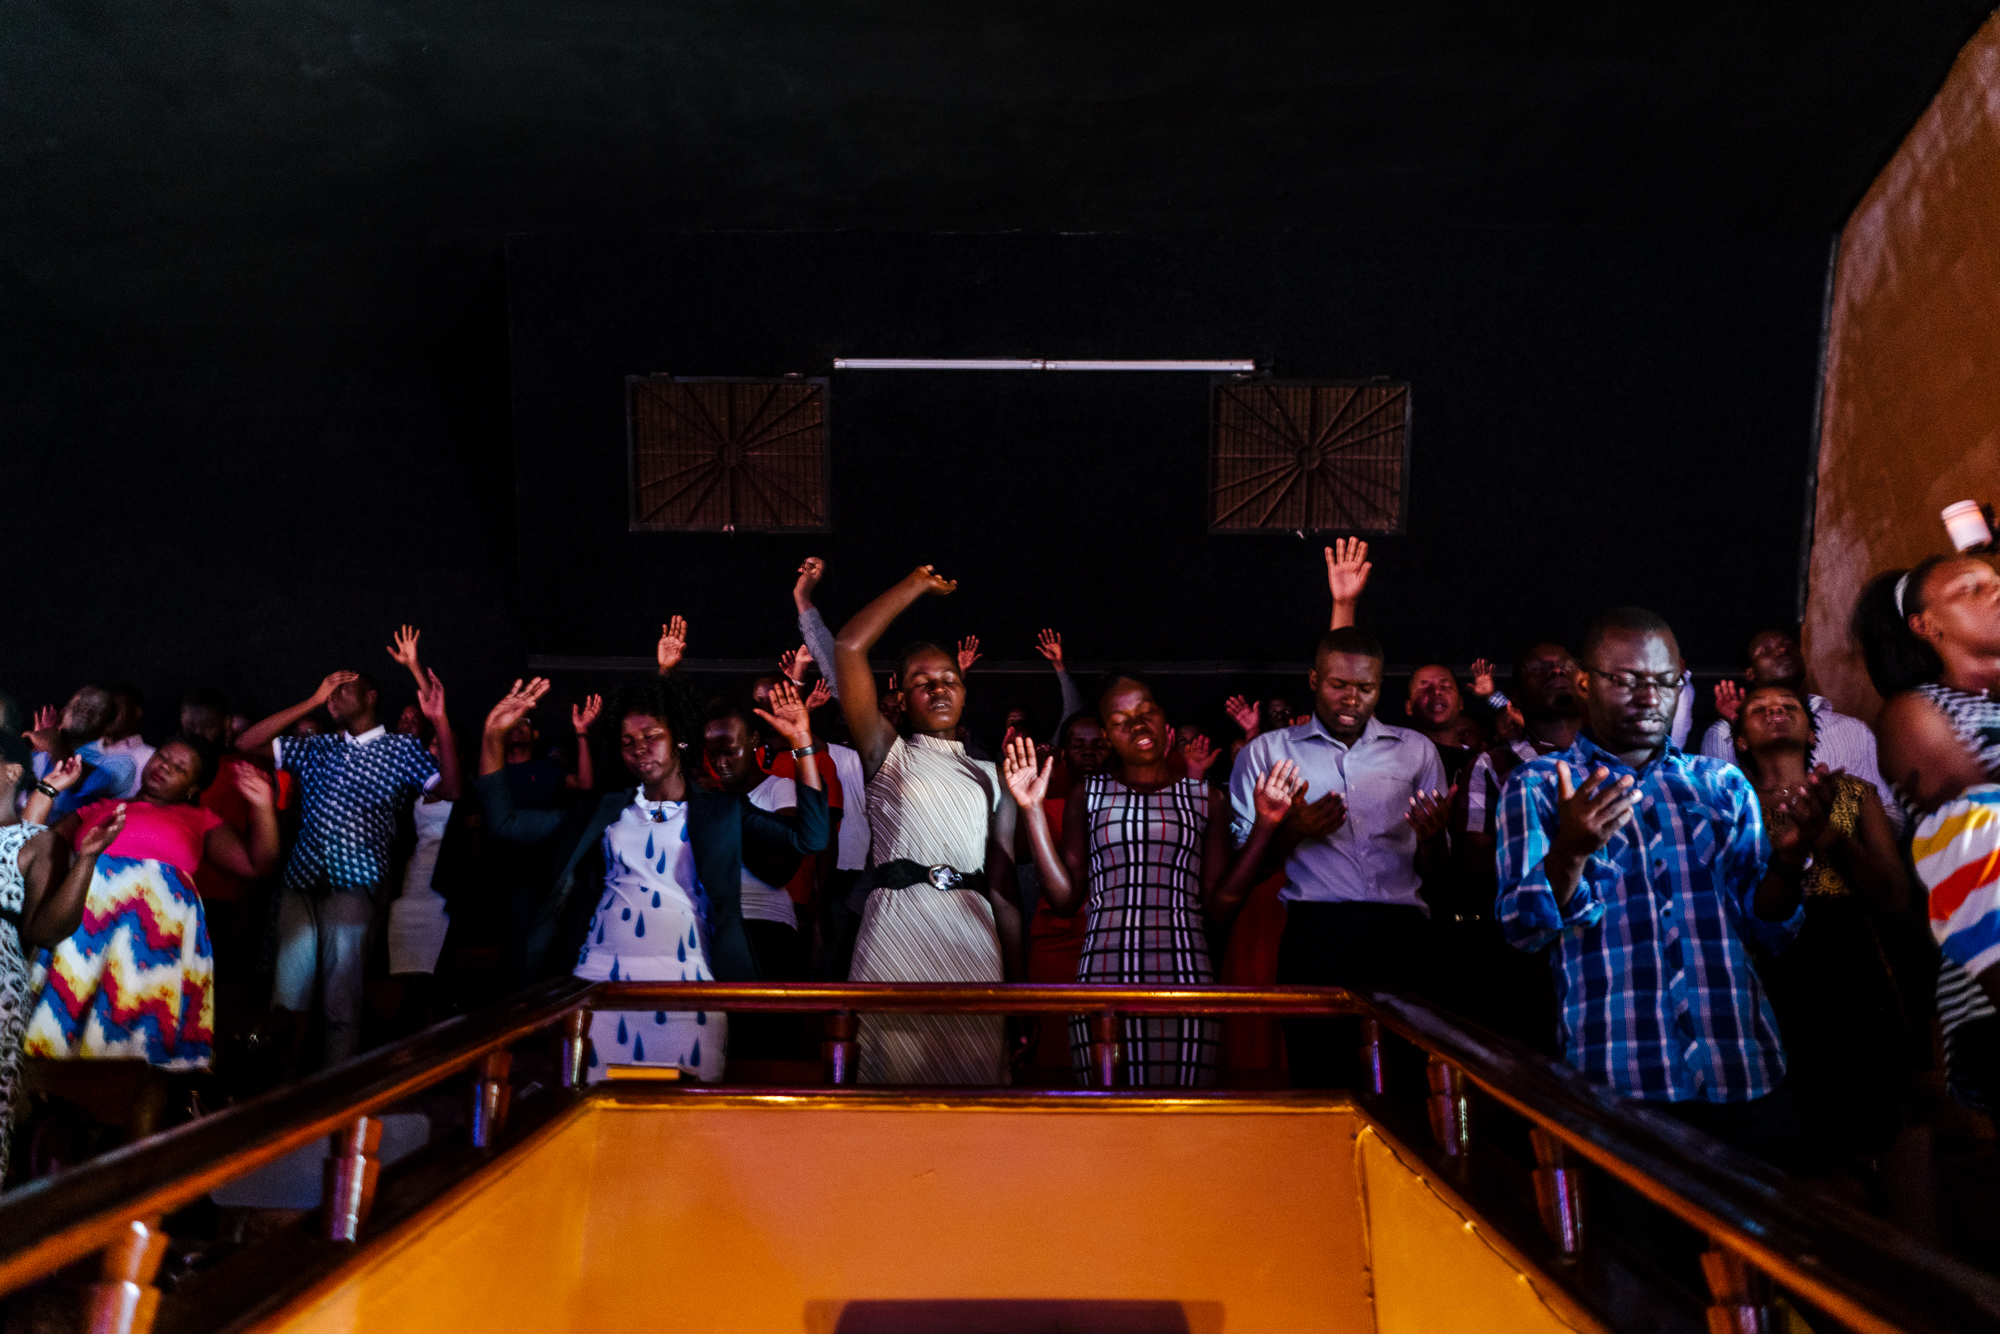 A Sunday service at Watoto church, an English speaking Pentecostal church, in downtown Kampala. Activists say Watoto, led by American pastor Gary Skinner, has been instrumental in spreading homophobia, including through hosting American evangelical Scott Lively.